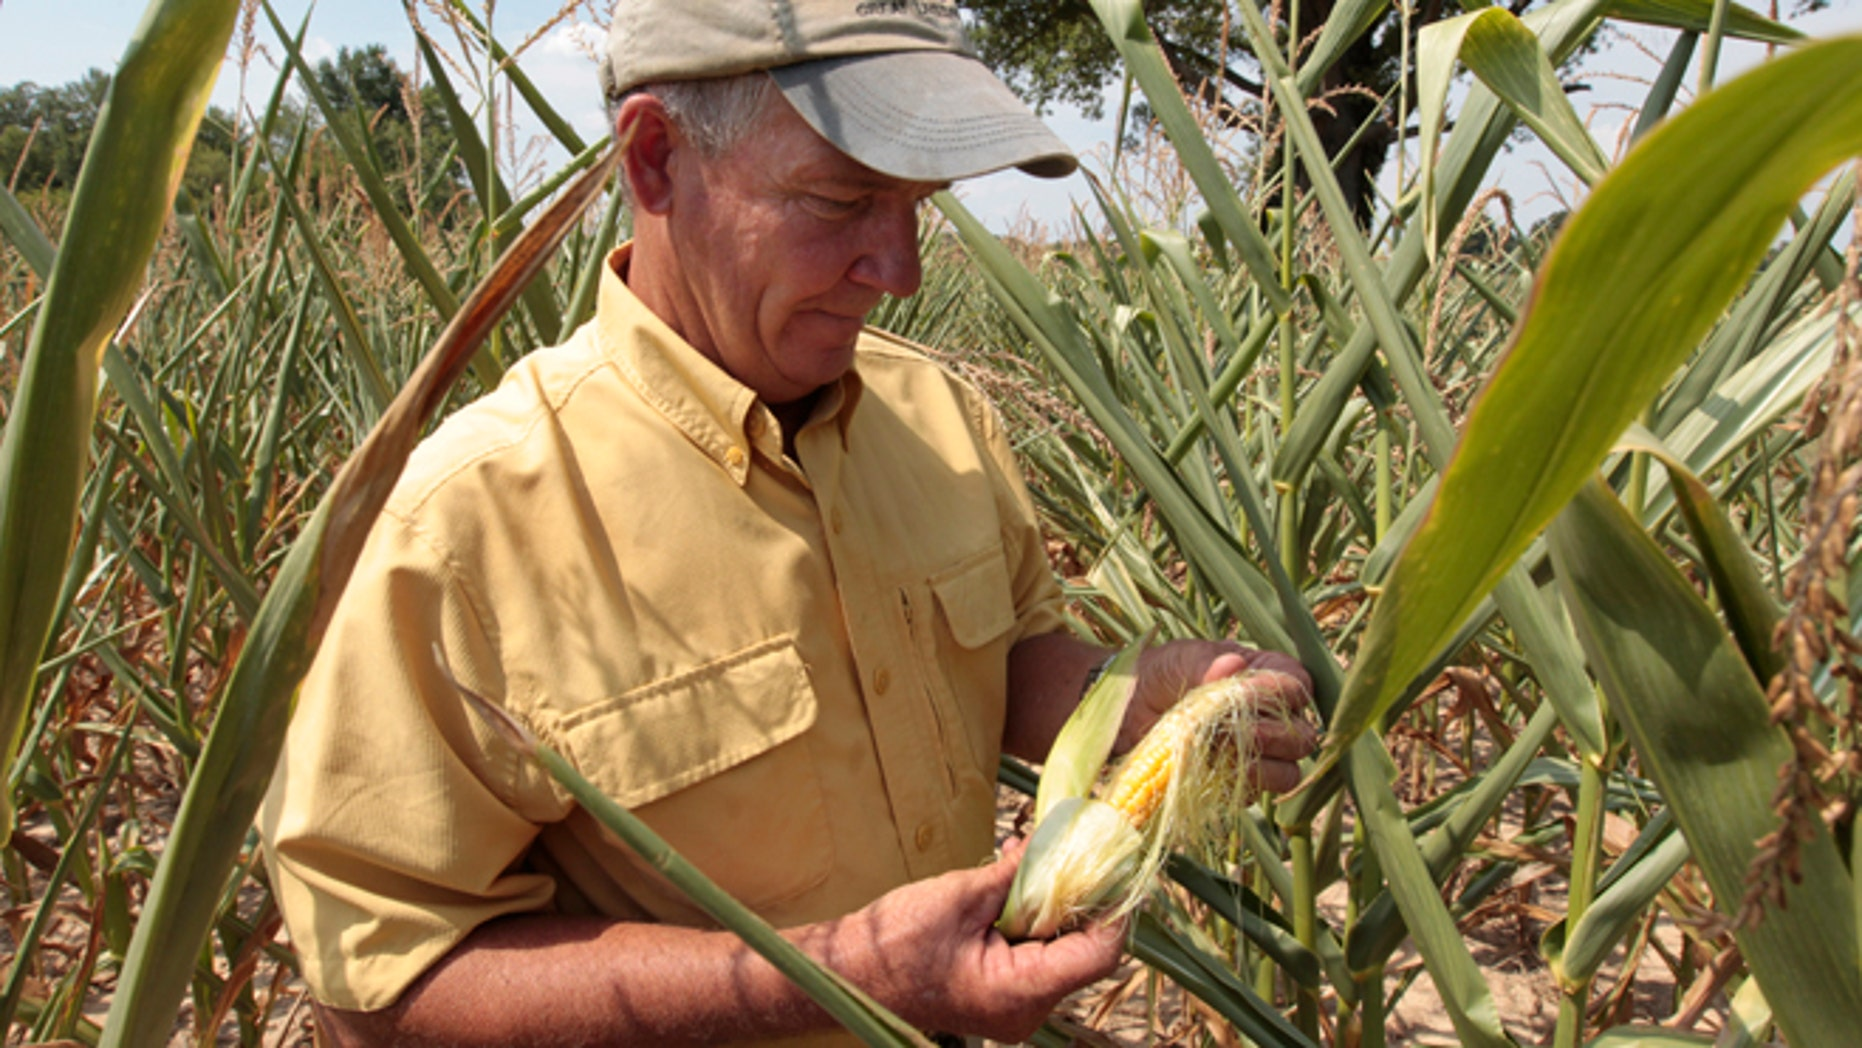 July 24: Farmer Scott Keach, owner of the 2500 acre Keach Farm looks looks over a drought-damaged ear of corn in one of the many fields on his farm in Henderson, Ky.